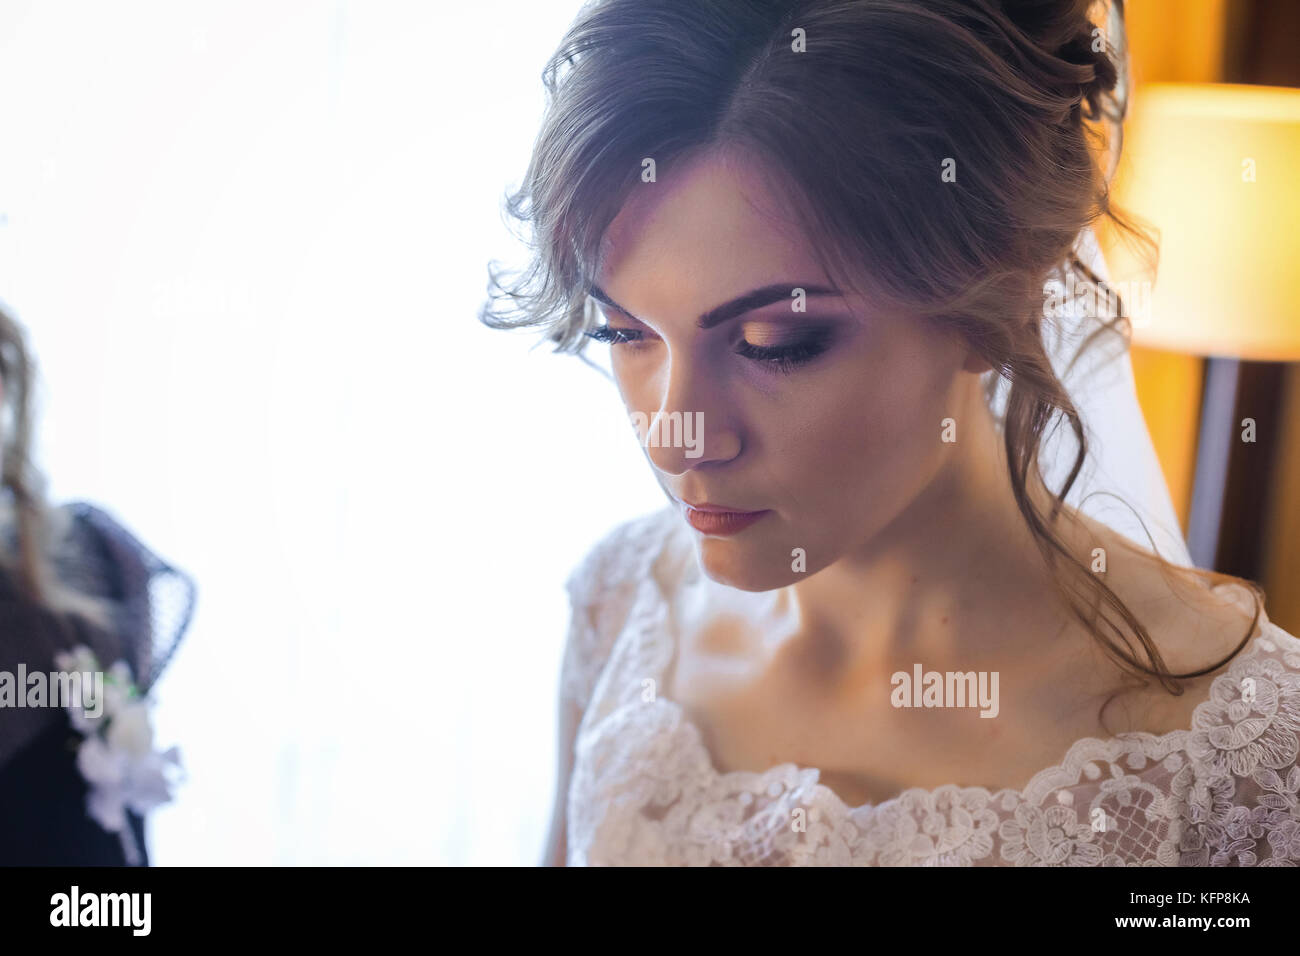 Thoughtfull bride looking for groom - Stock Image